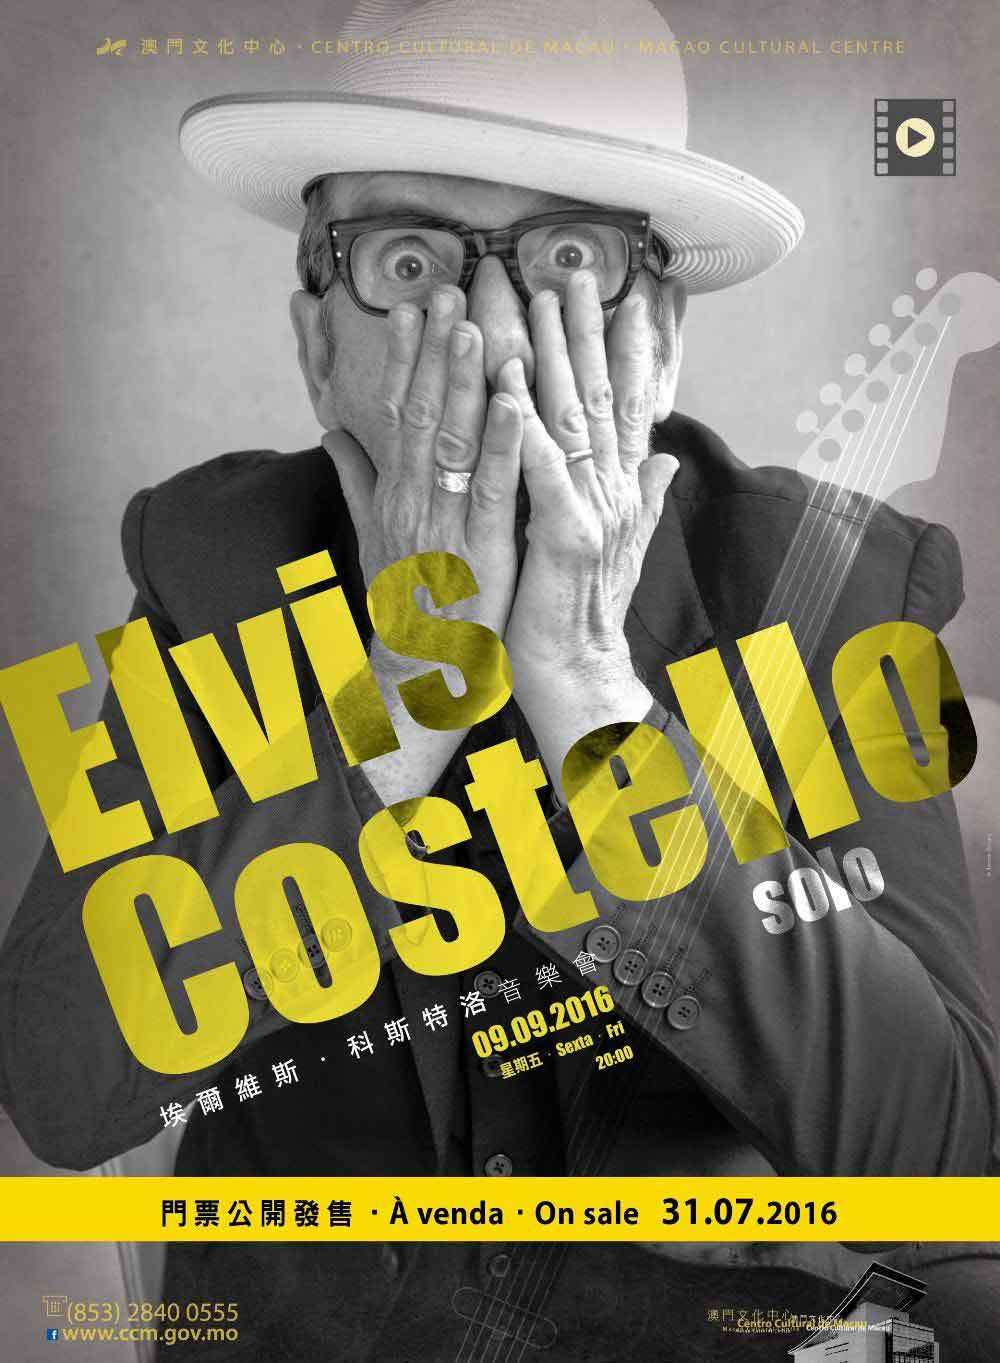 Elvis Costello in Macau